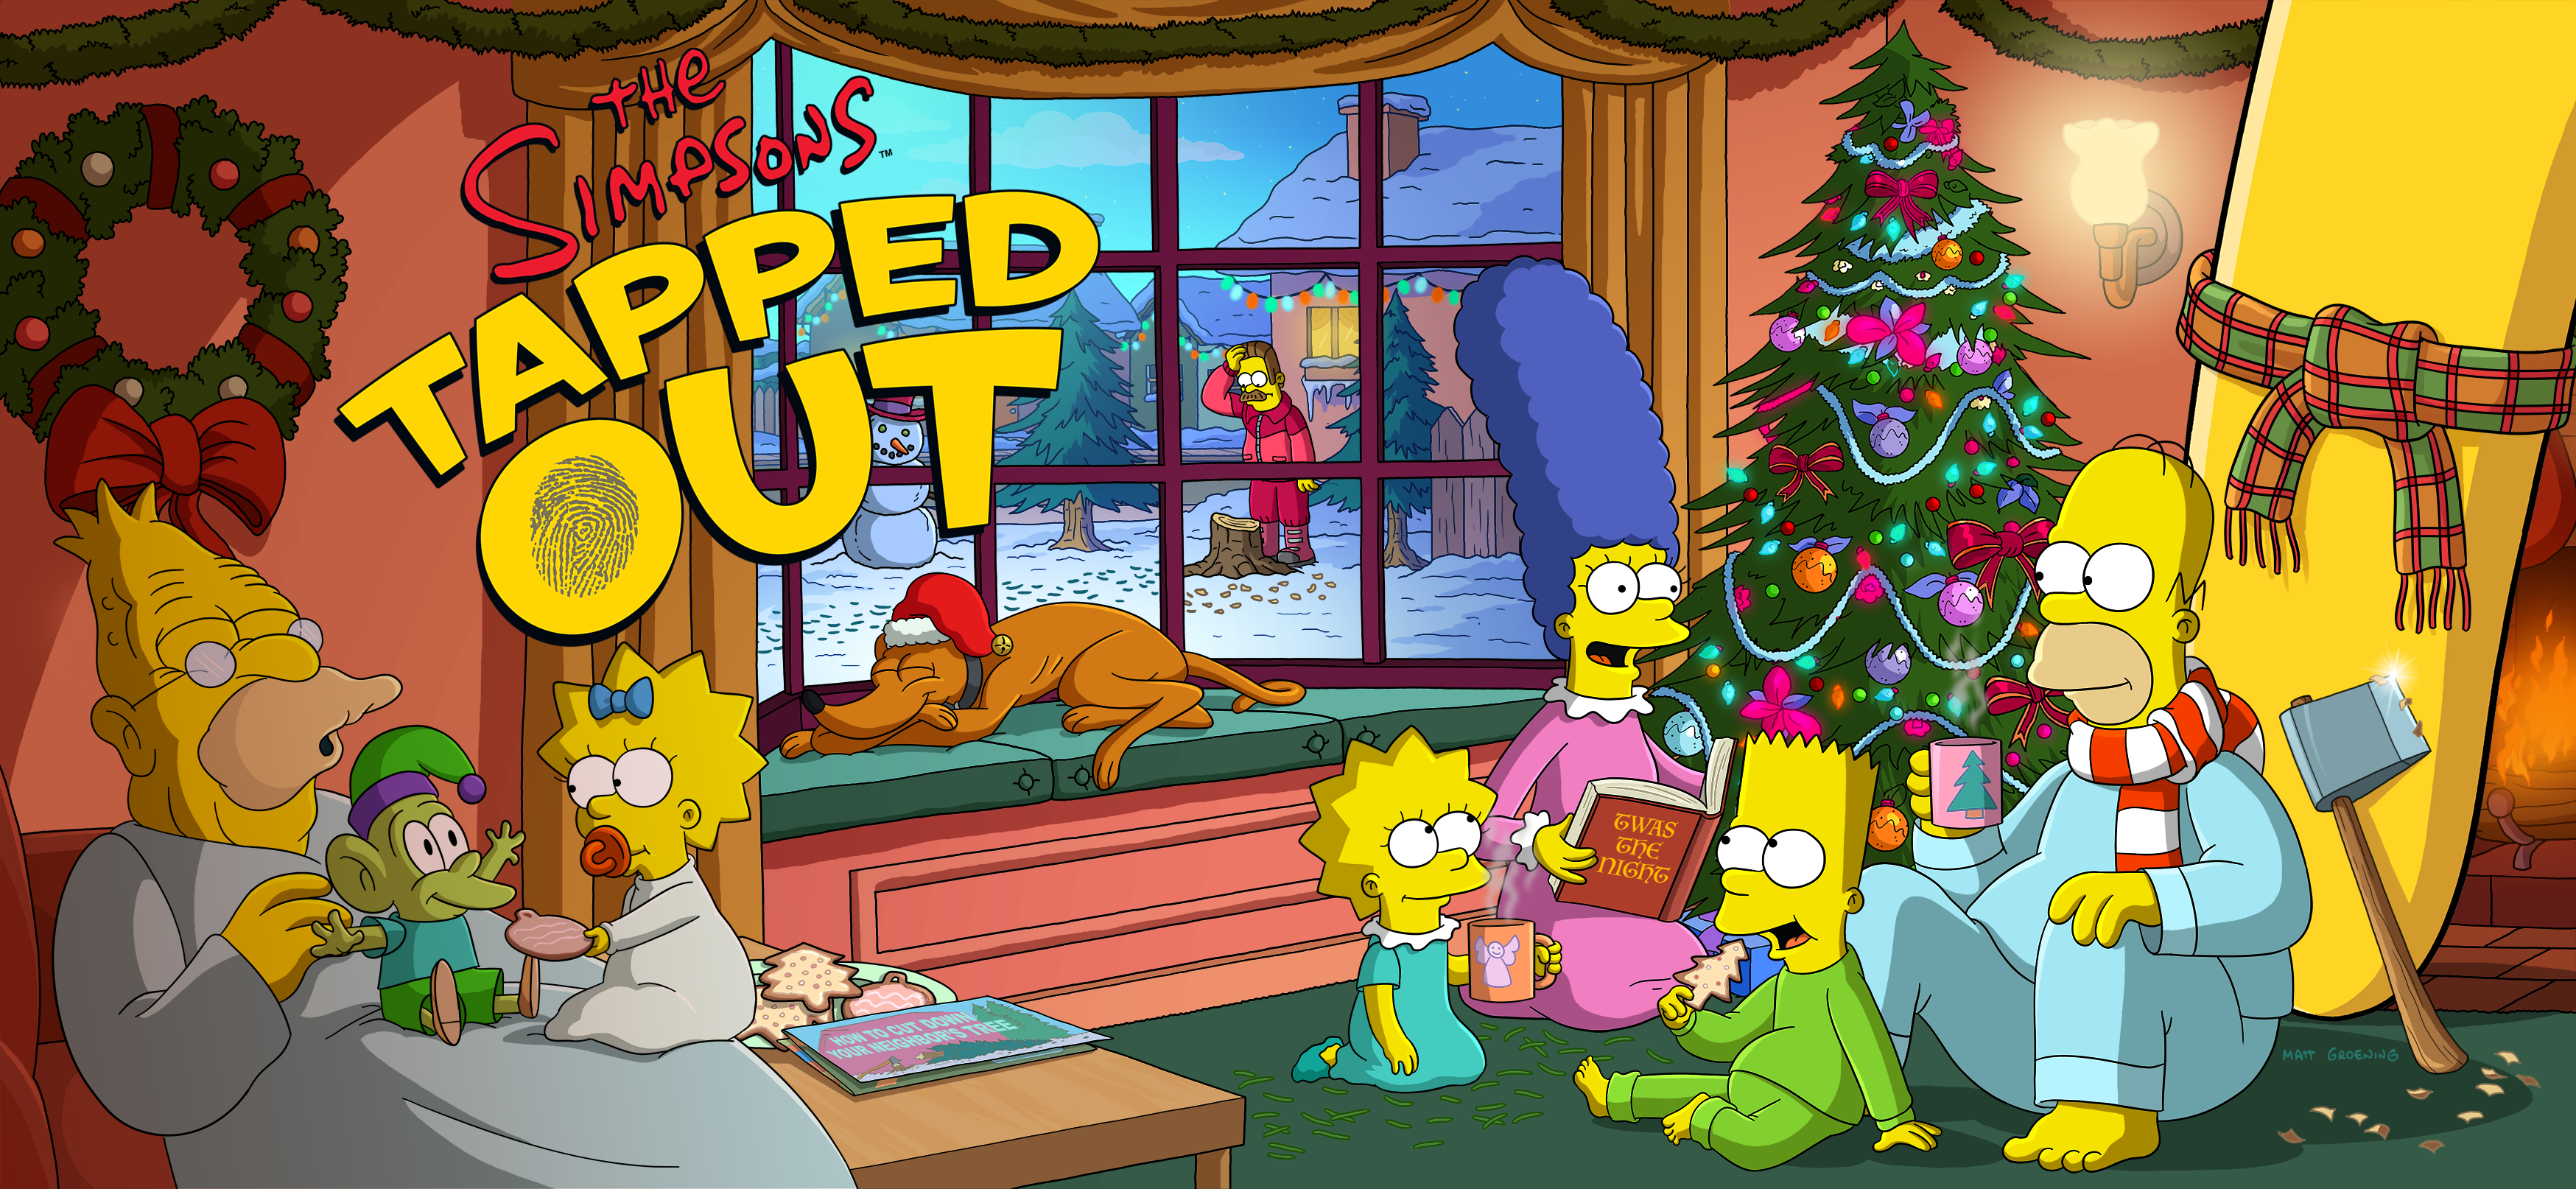 A_Simpsons_Christmas_Special_Splash_Screen.png